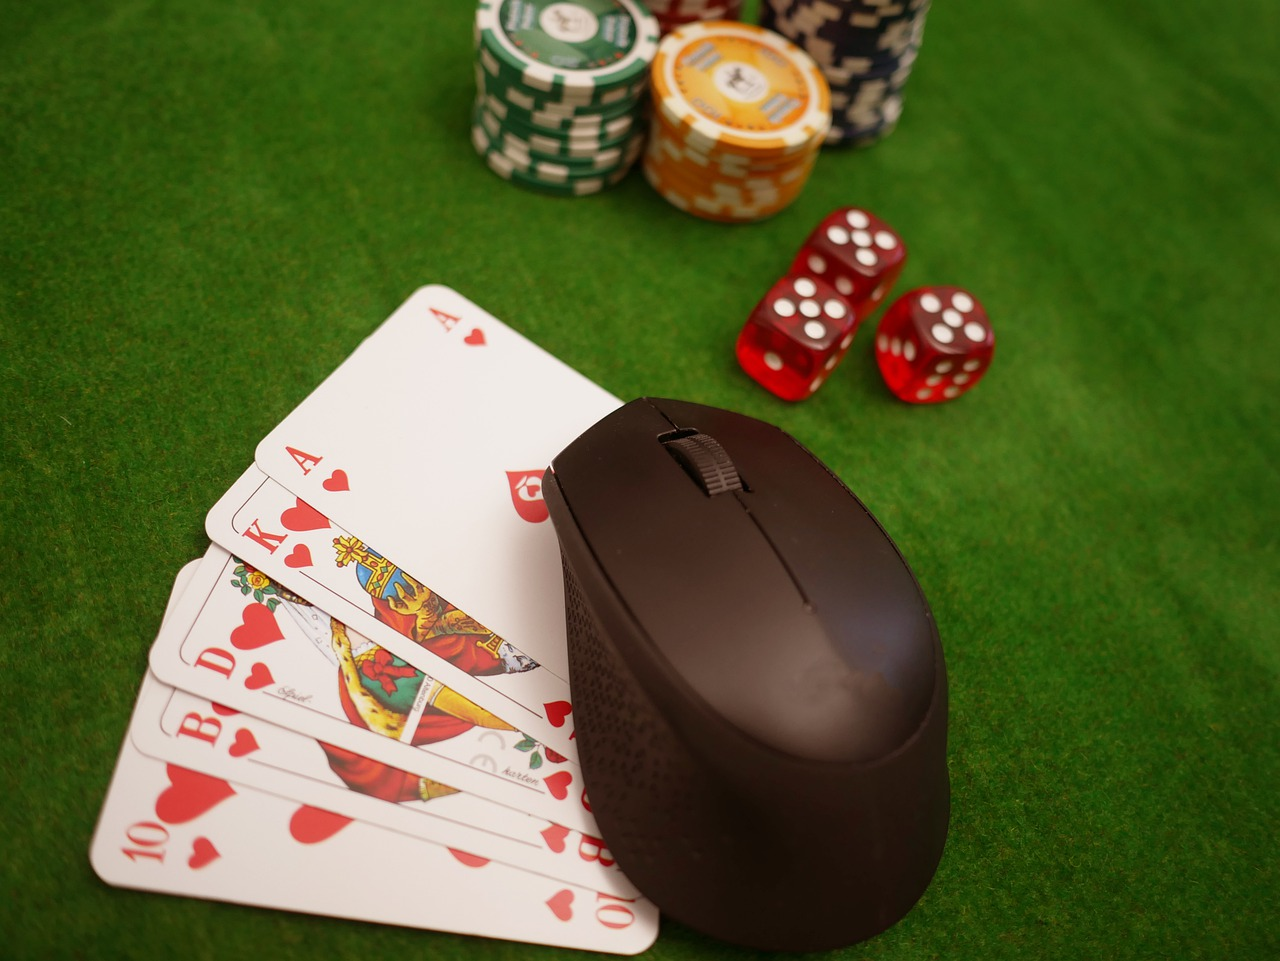 How The Social Life Of Online Gambling Is